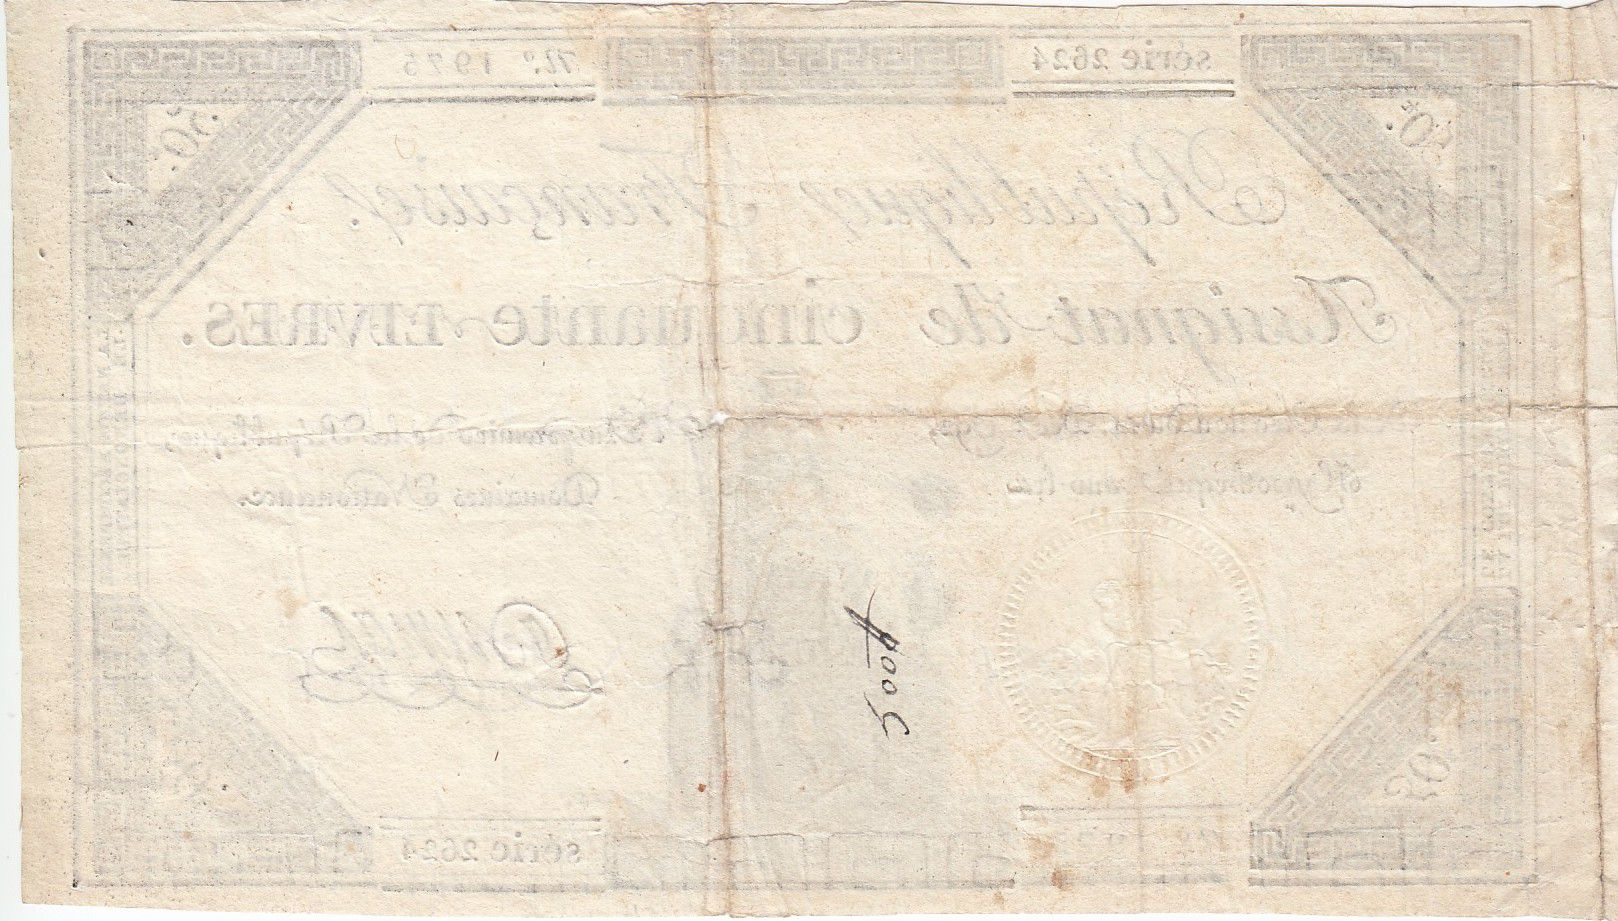 France 50 Livres France assise - 14-12-1792 - Sign. Dumas - TB+